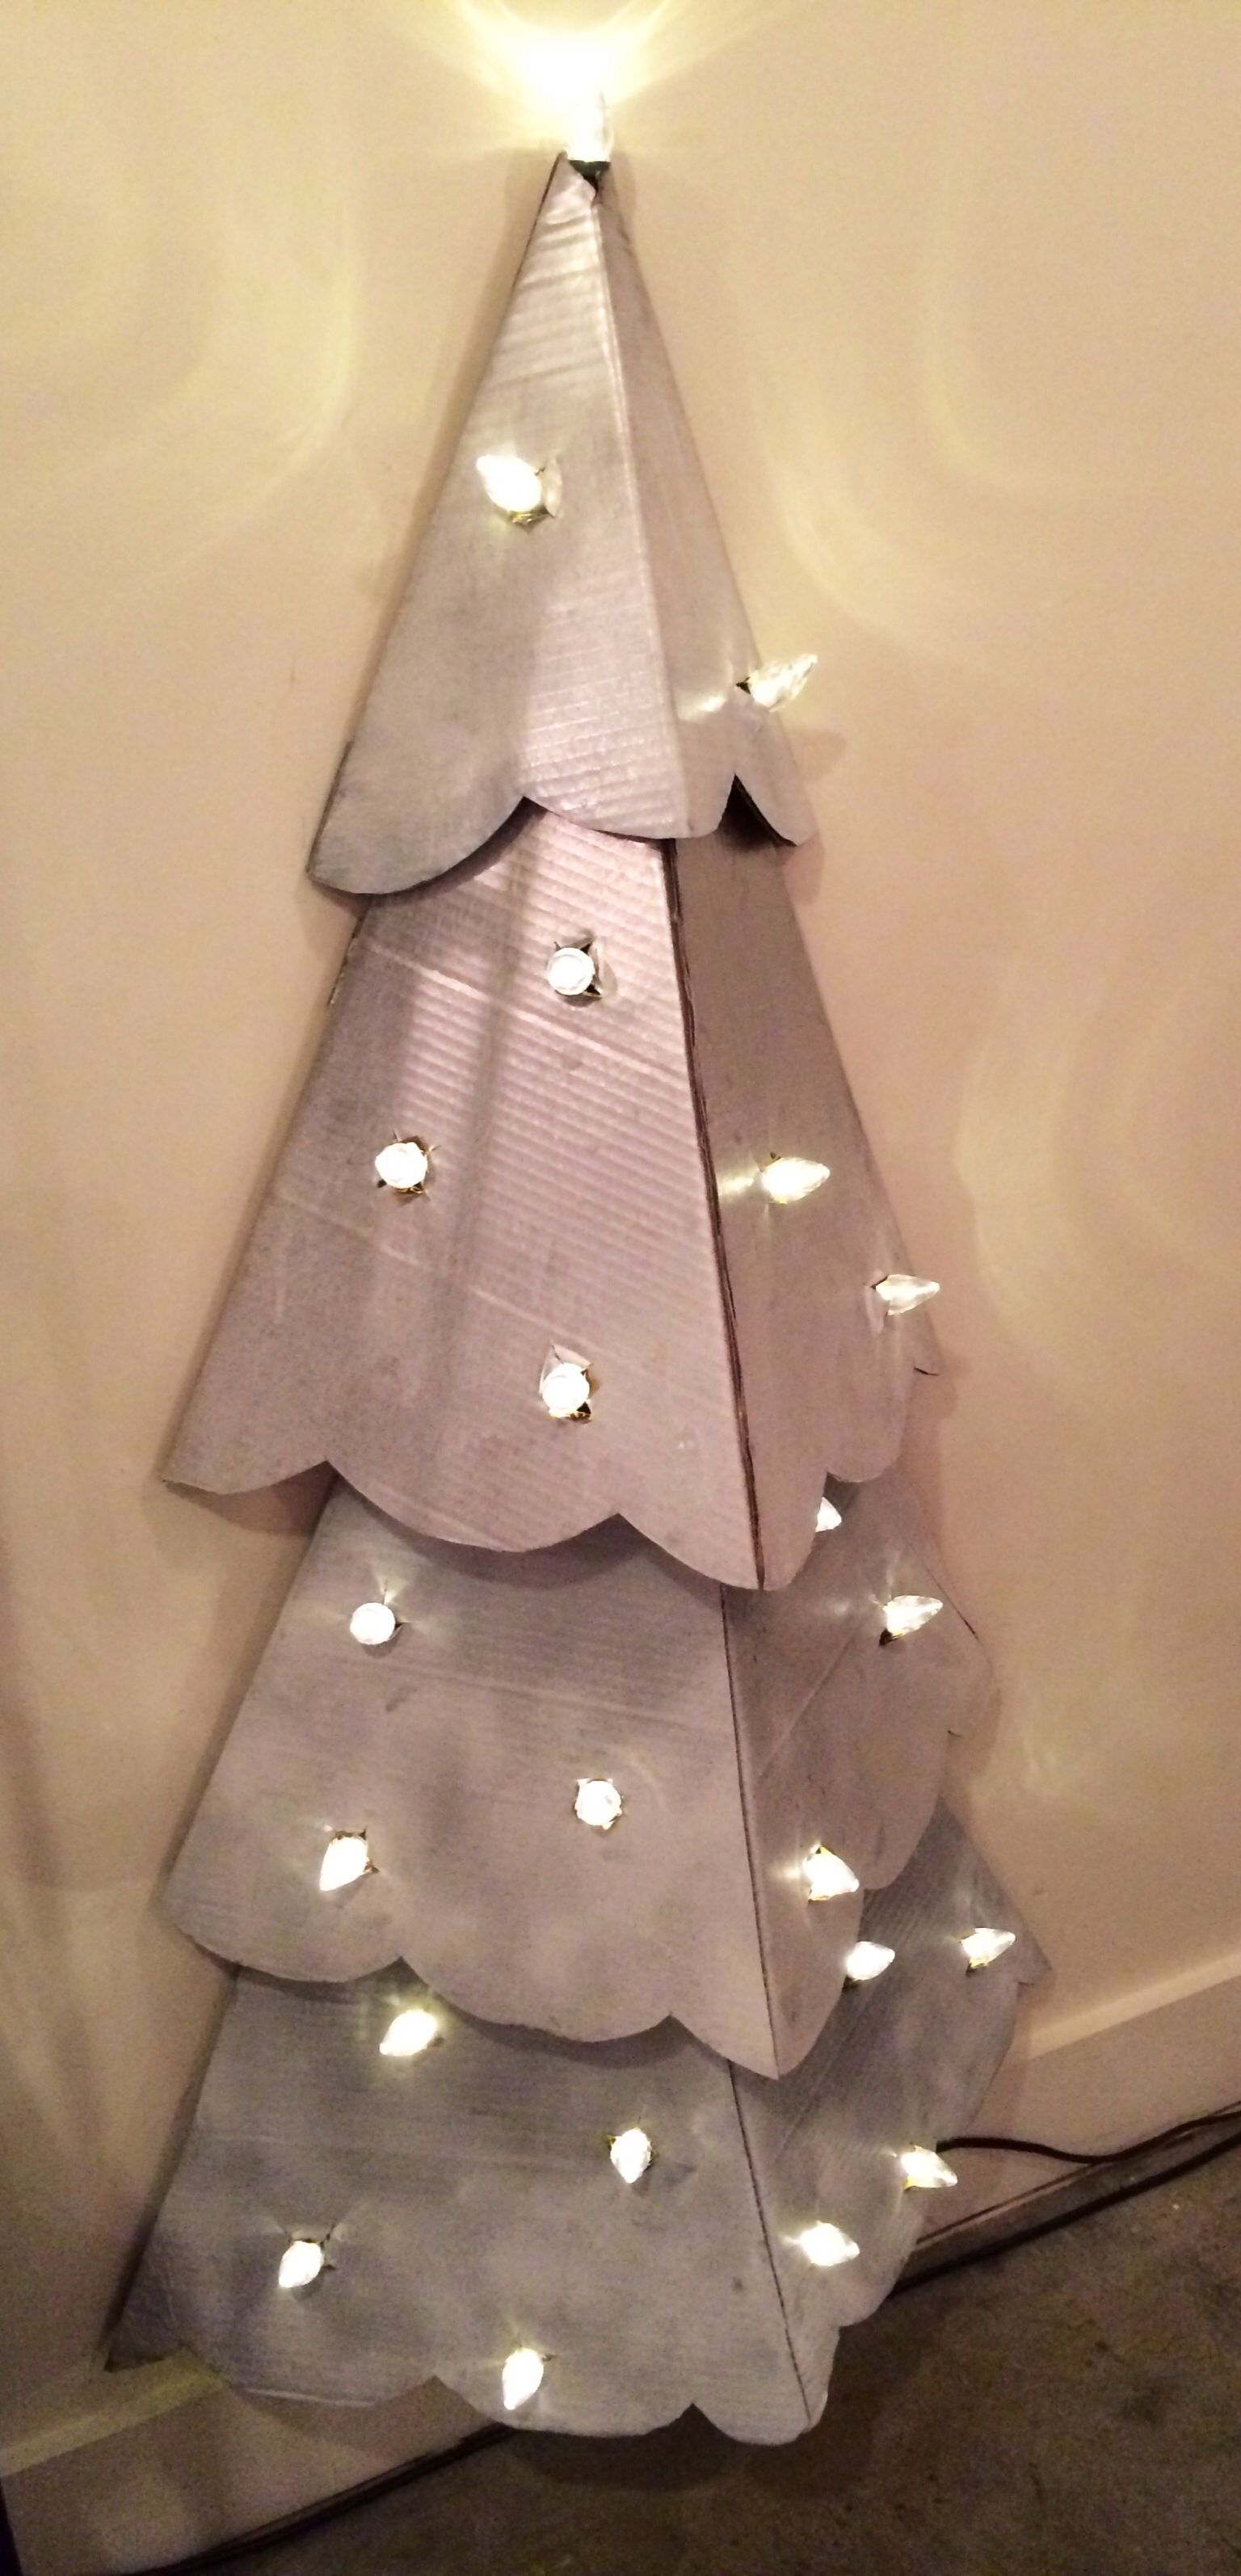 diy christmas tree cardboard and lights - Cardboard Christmas Decorations